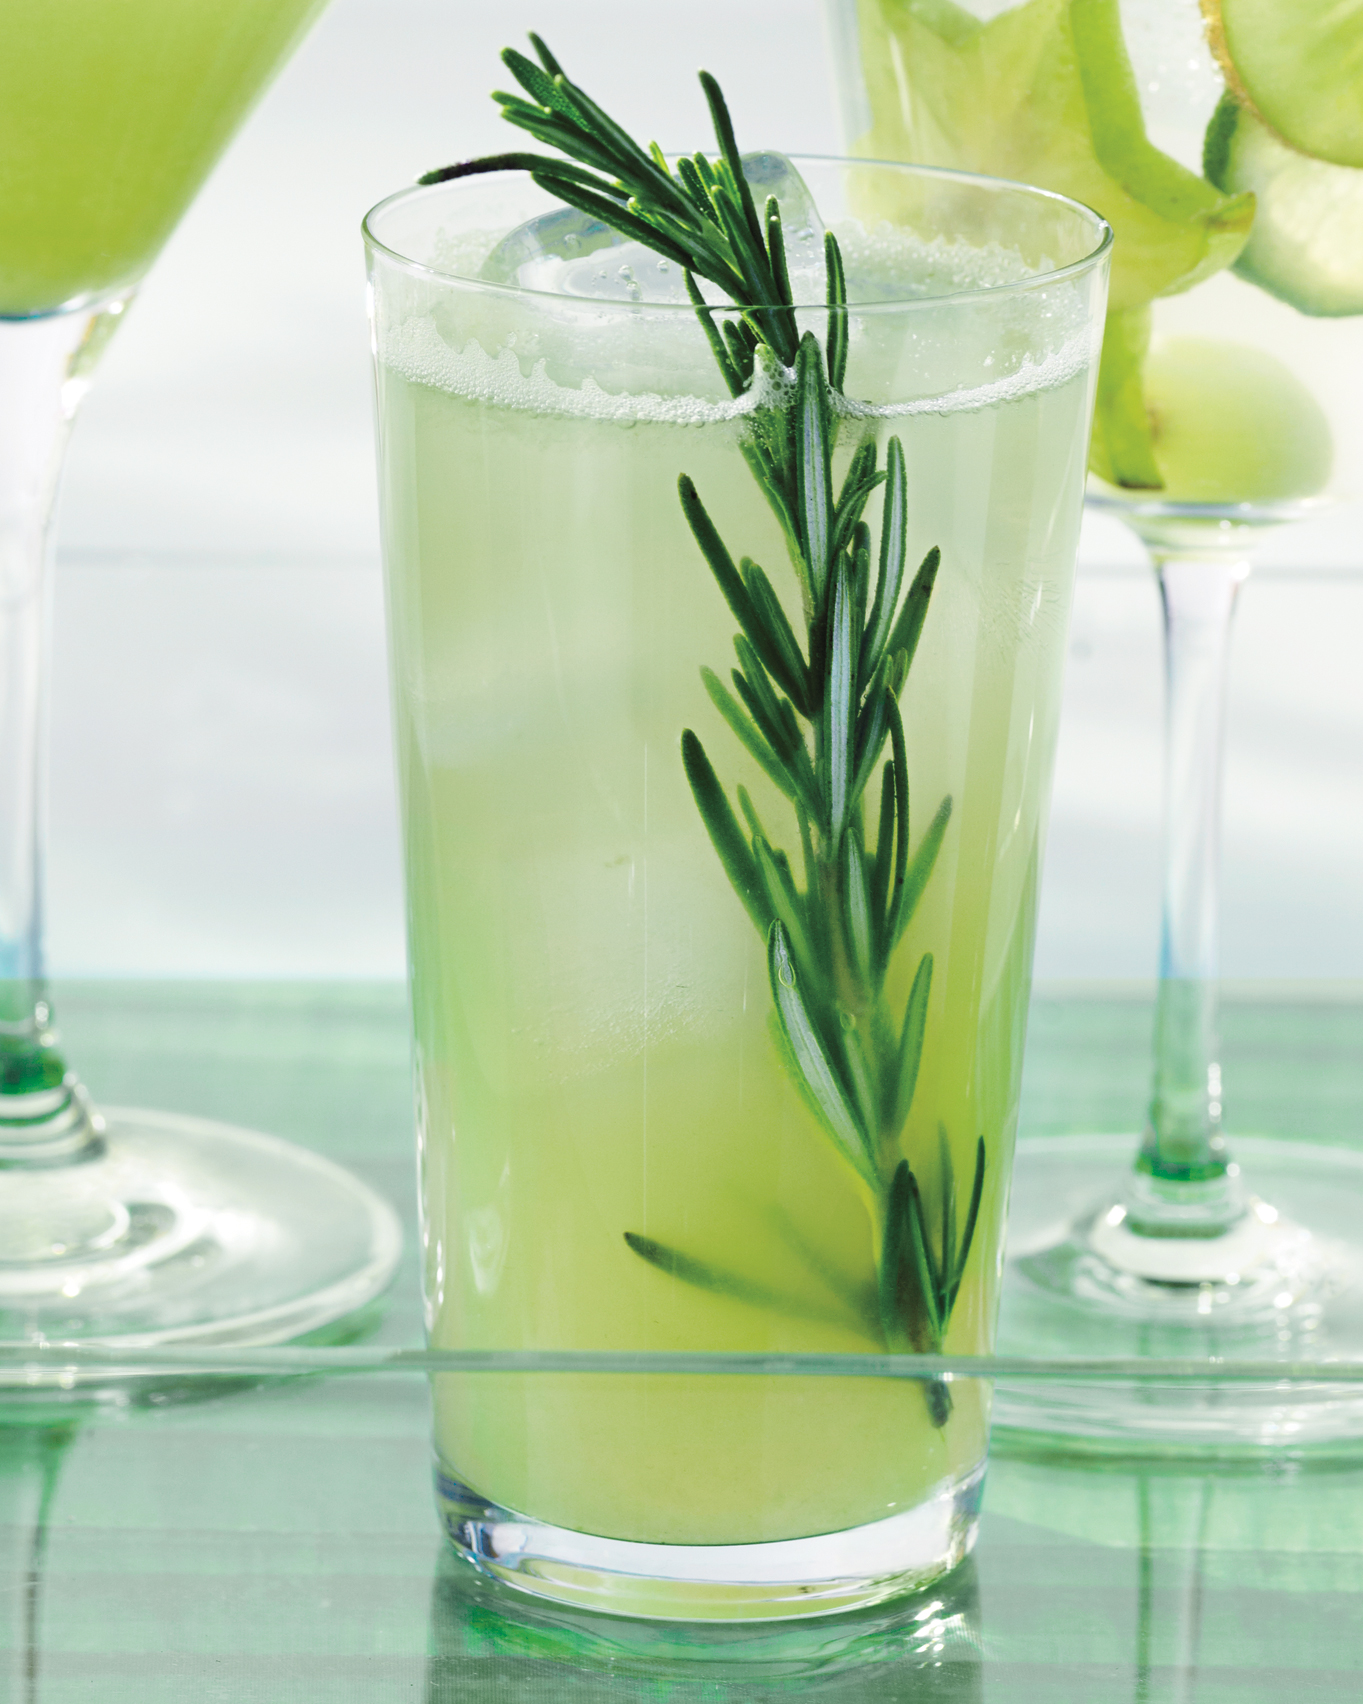 wedding-mocktail-recipes-apple-rosemary-fizz-md109950-cocktails-su13-0915.jpg